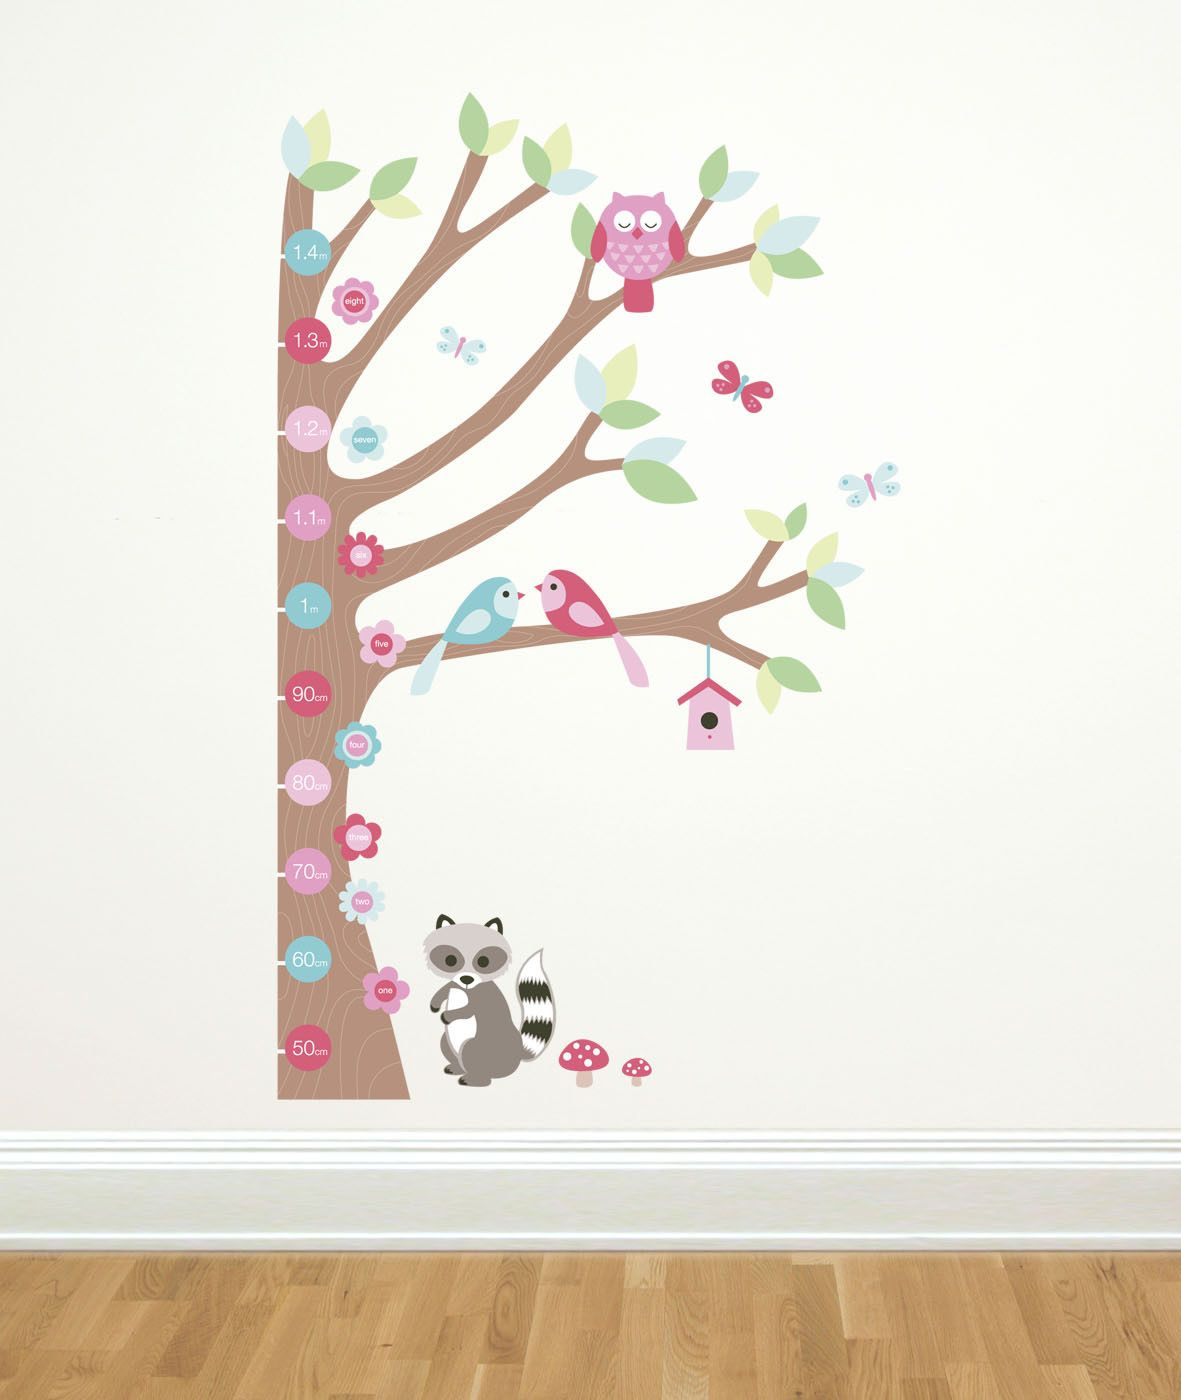 Forwalls Forest Growth Nursery Wall Stickers Maternity Baby - Nursery wall decals ireland